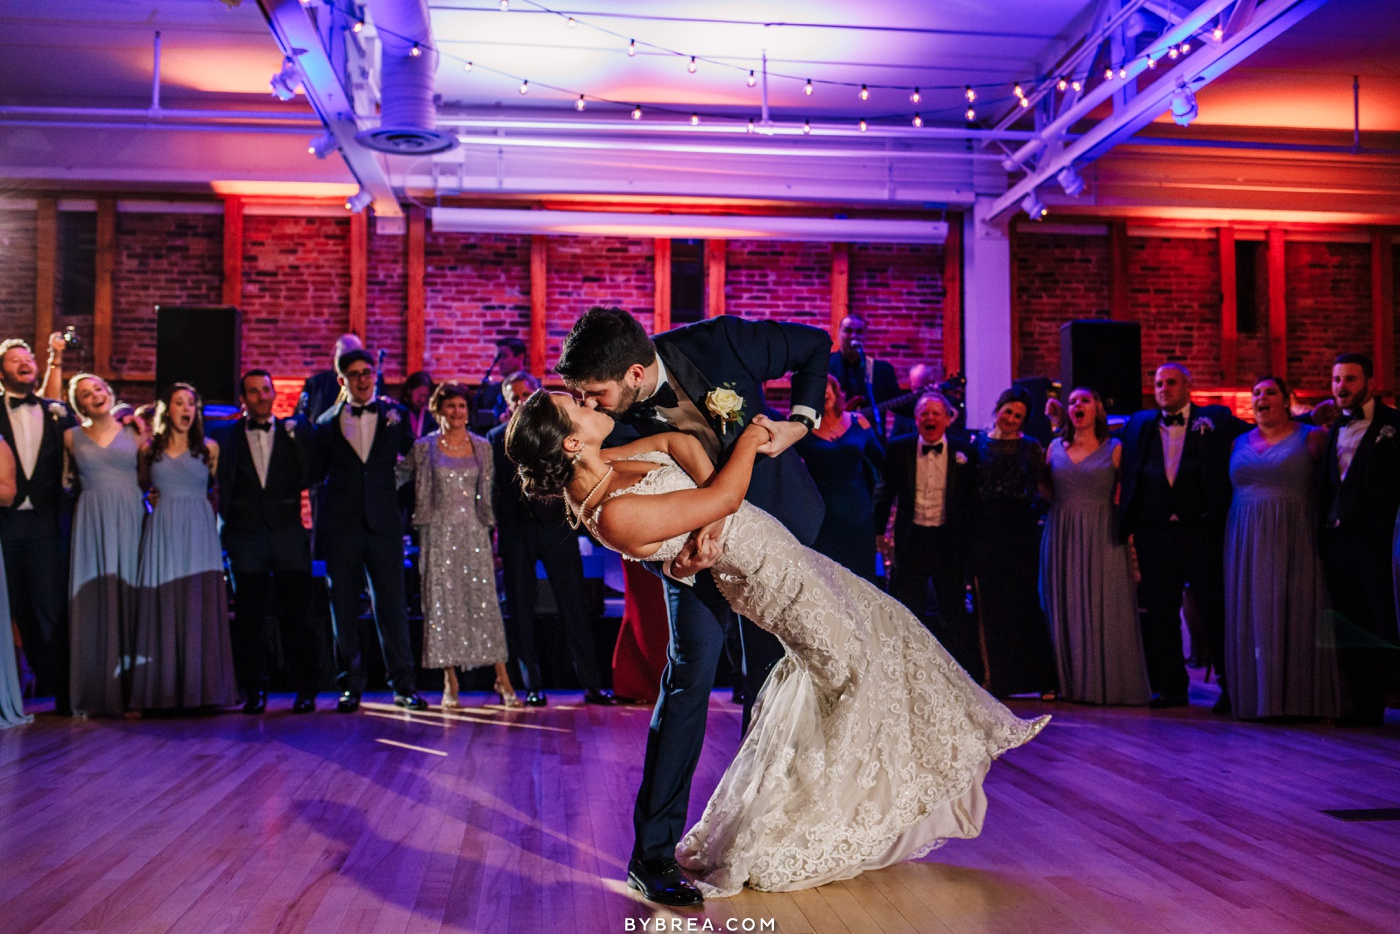 Wedding at American Visionary Art Museum photo bride and groom first dance